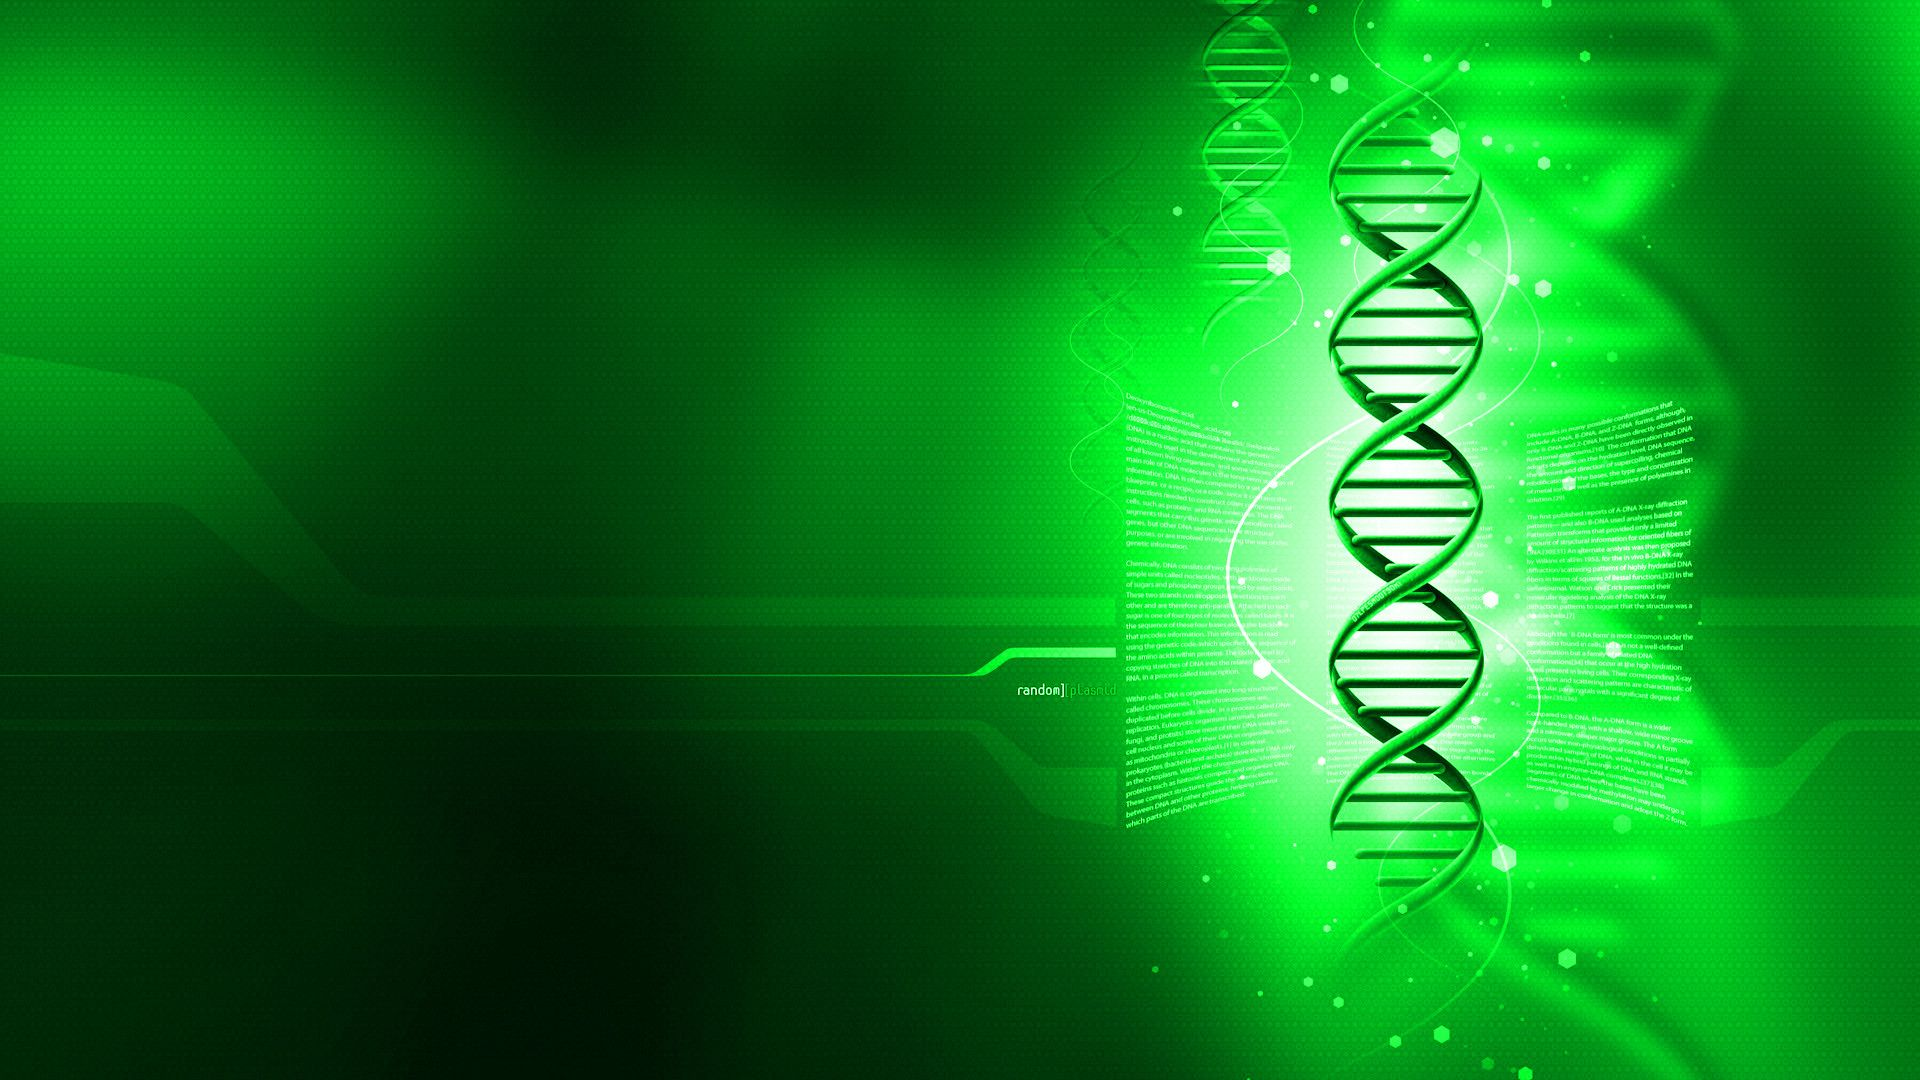 Wallpapers For Biology Wallpaper Dna 1920x1080